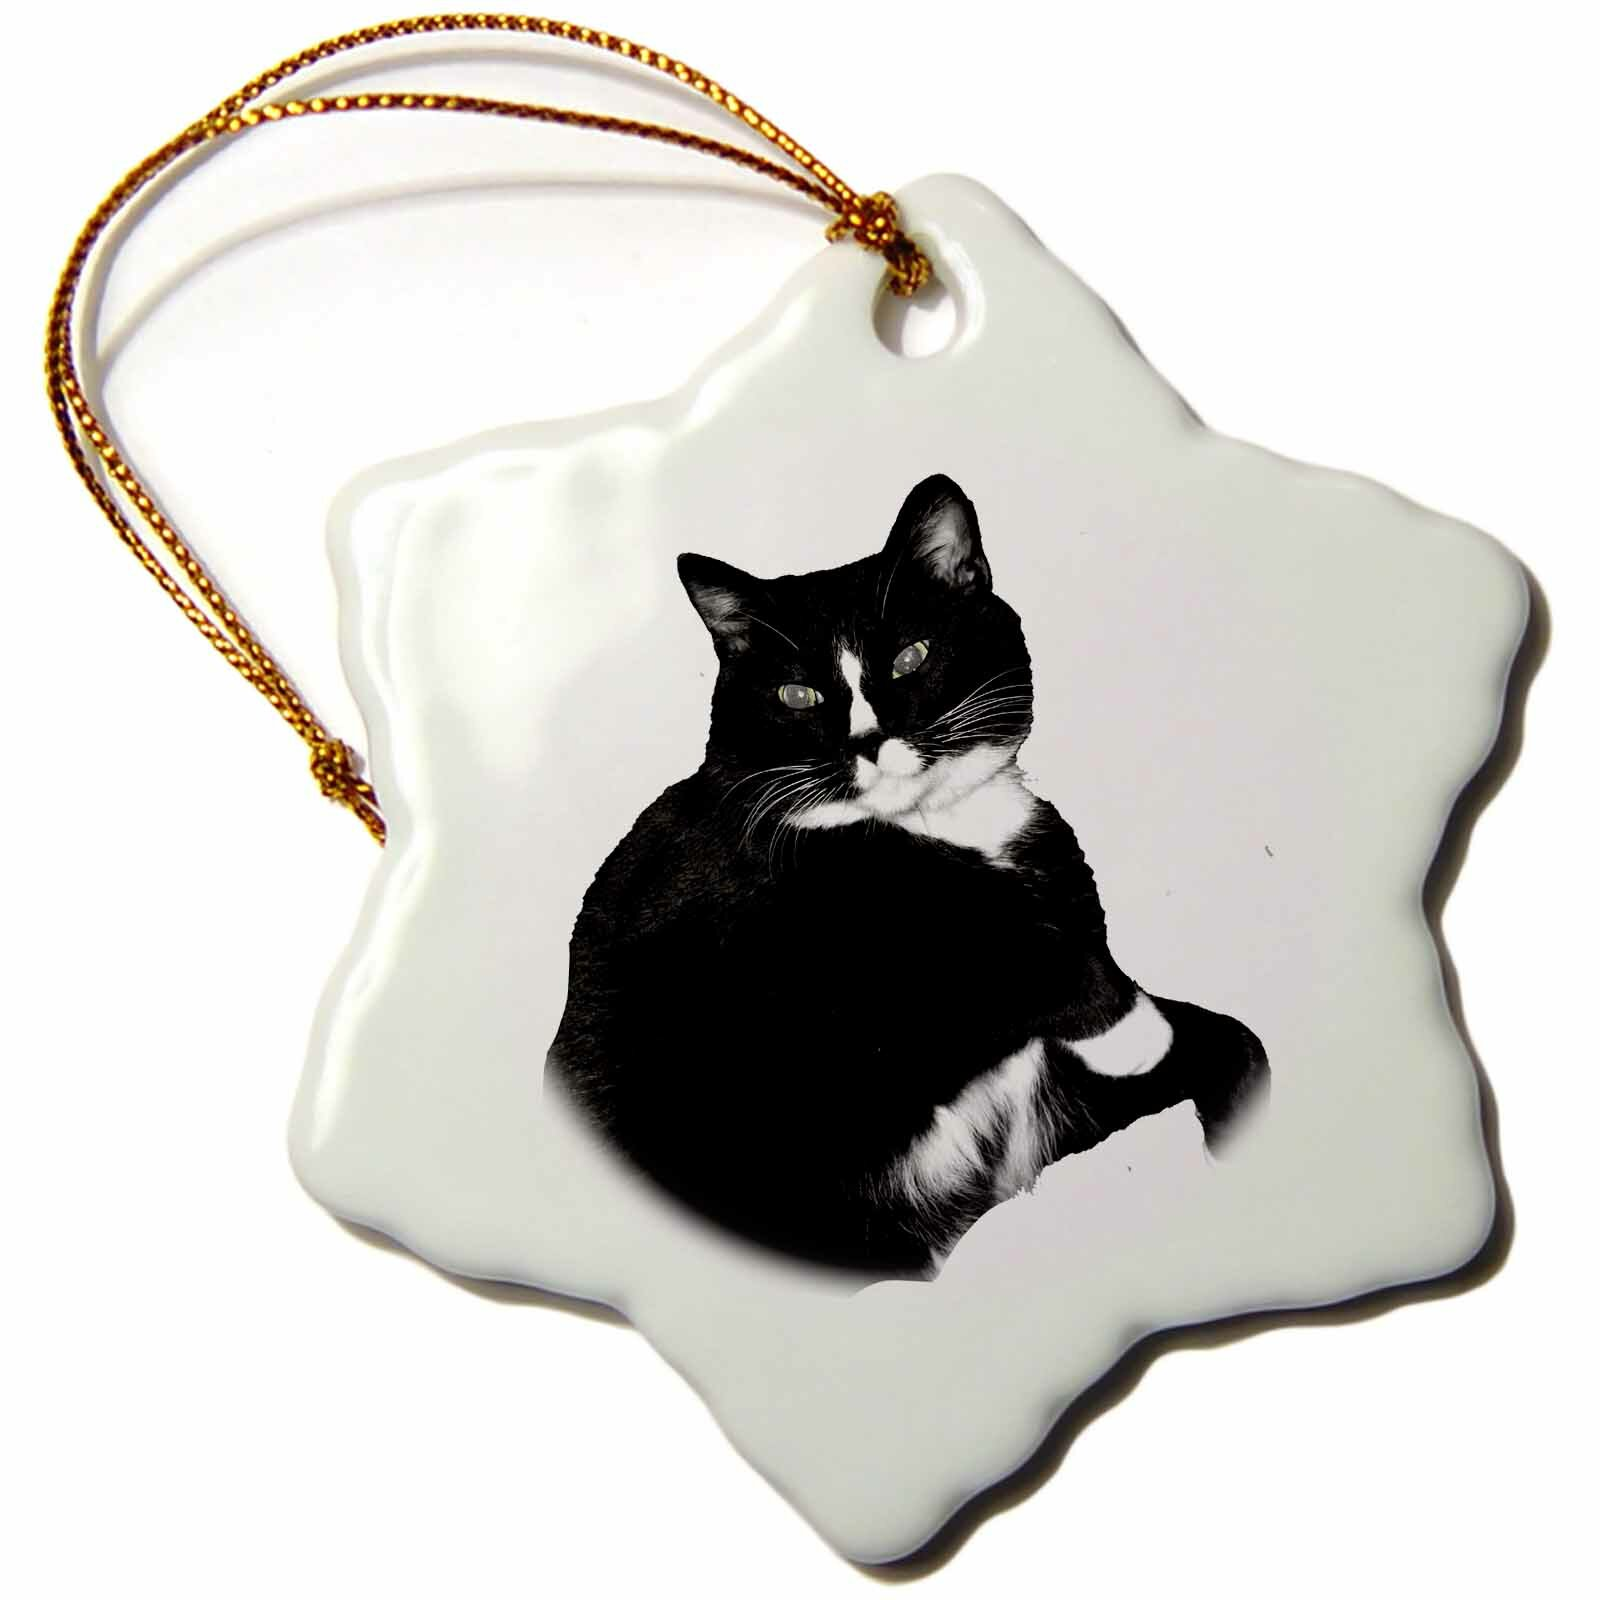 The Holiday Aisle Cat Looking Up Cutout Snowflake Holiday Shaped Ornament Wayfair